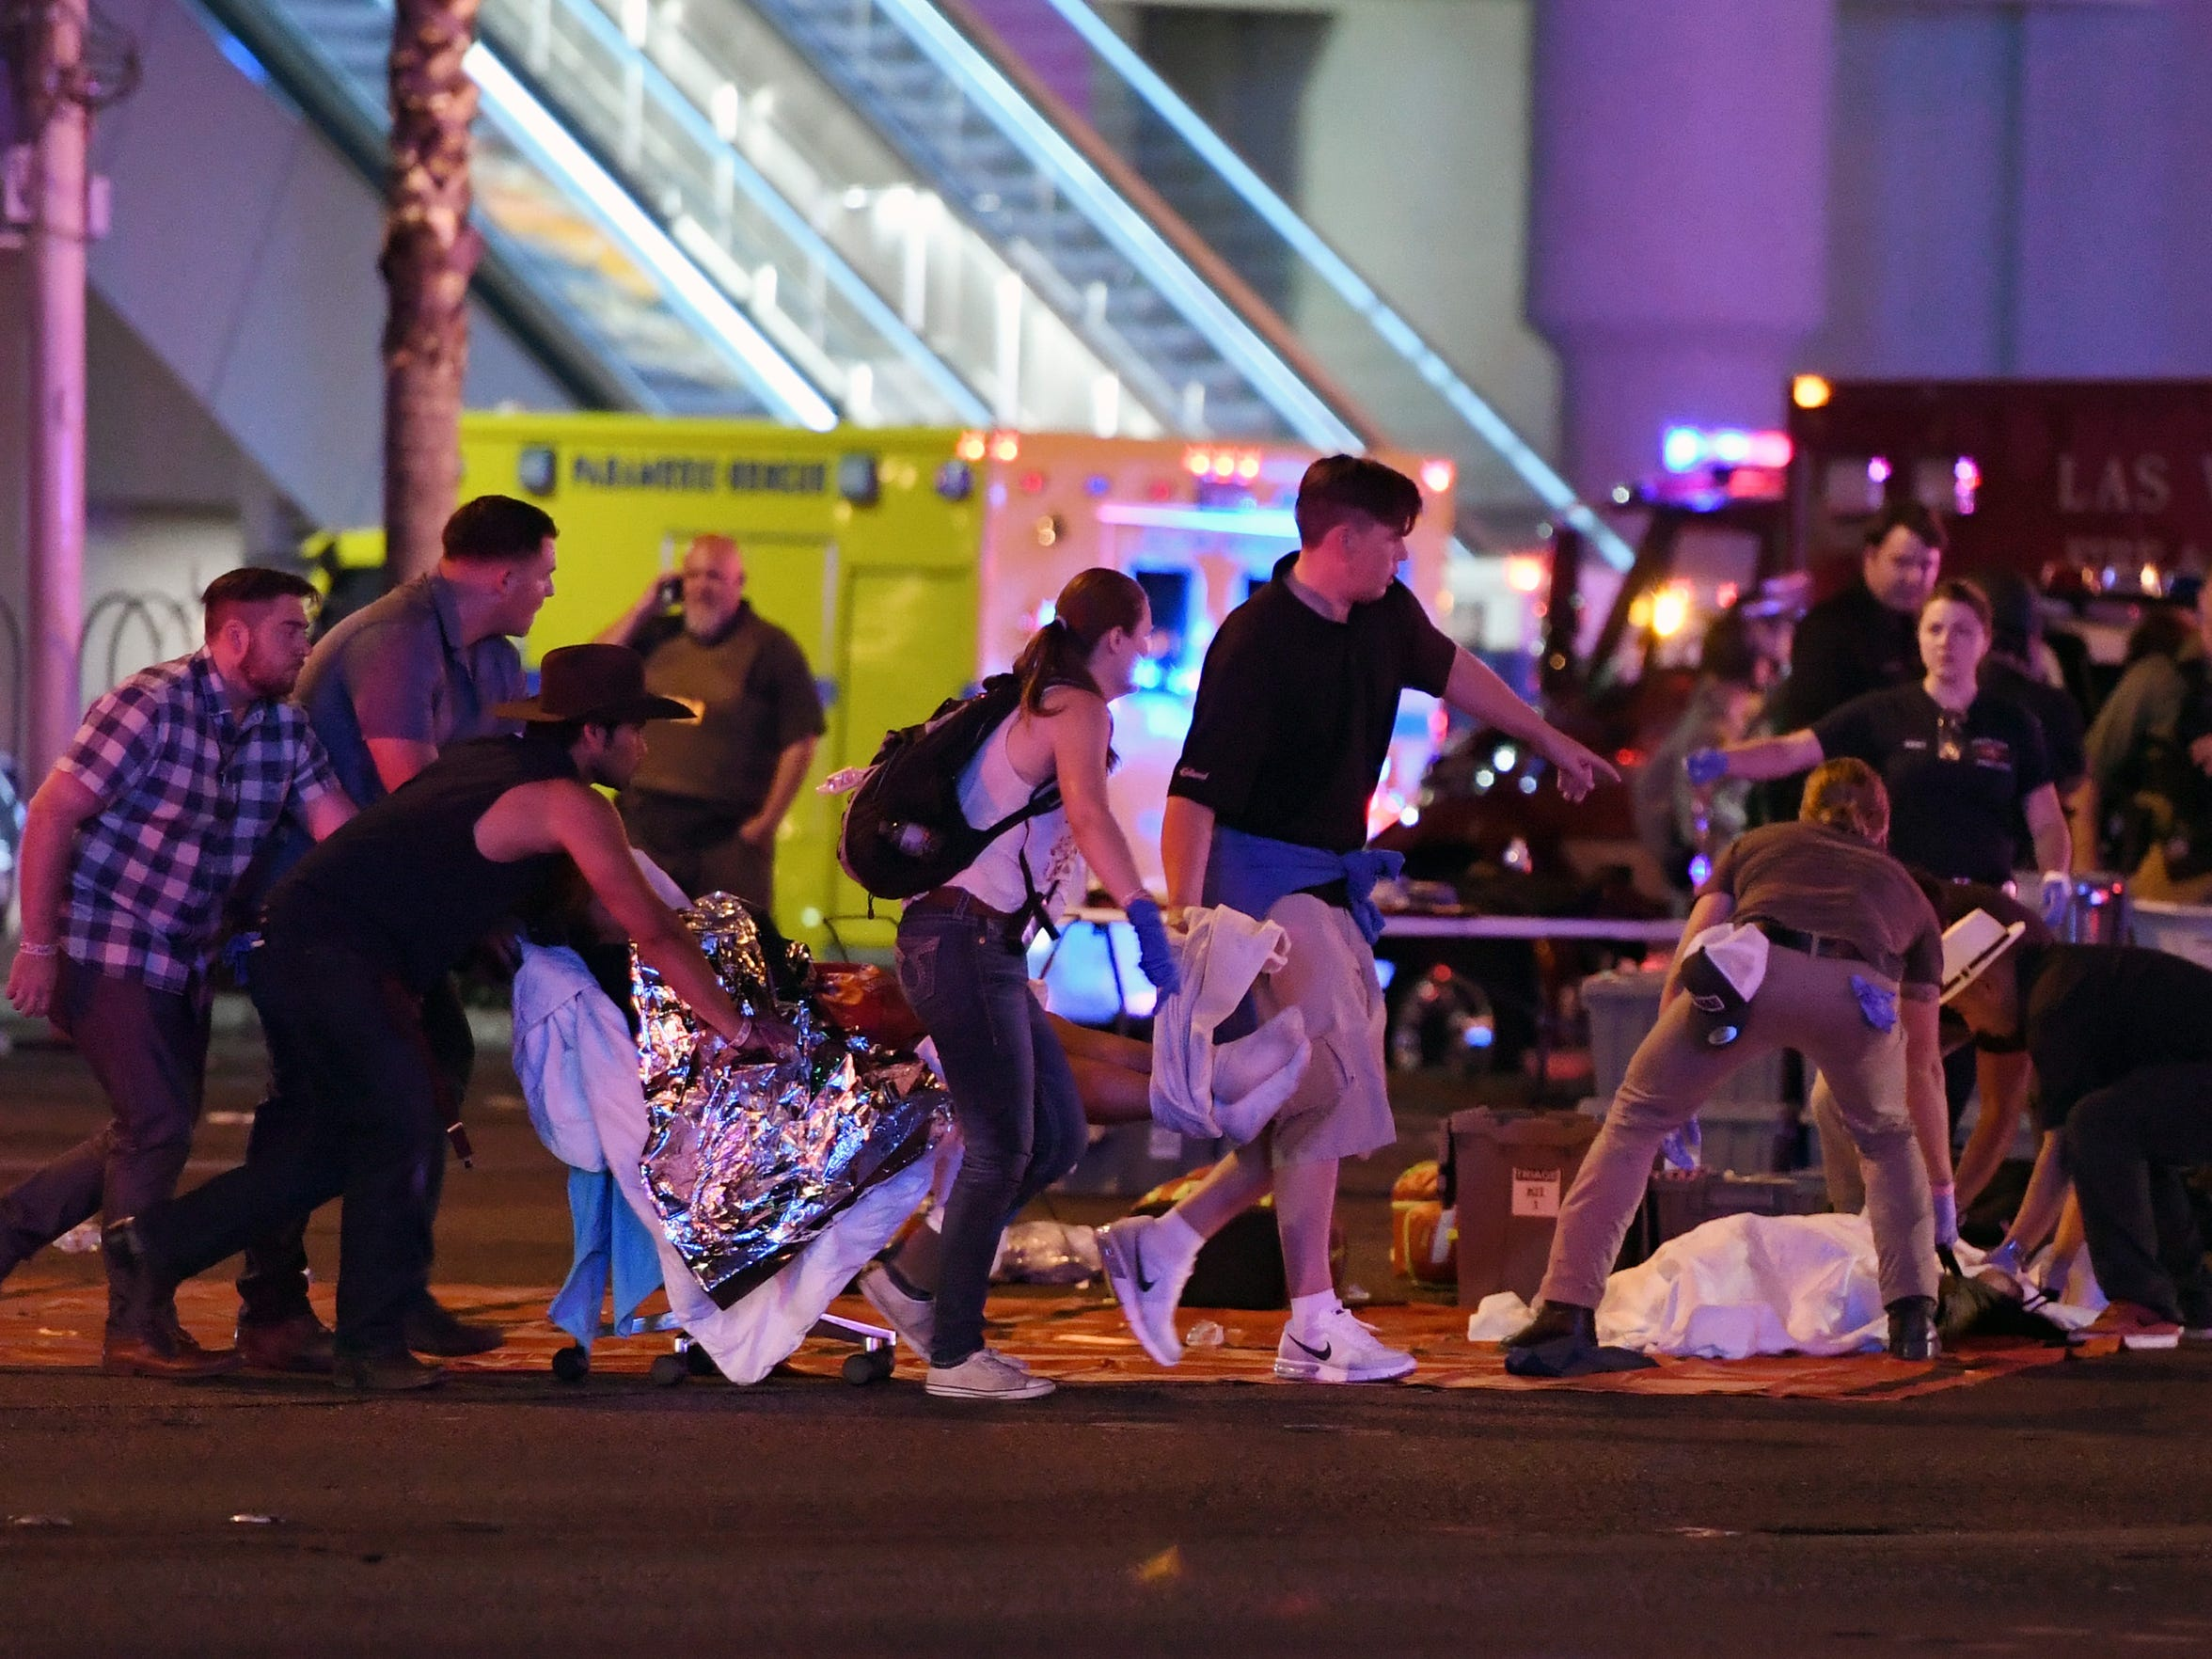 An injured person is tended to in the intersection of Tropicana Avenue and Las Vegas Boulevard after the shooting.